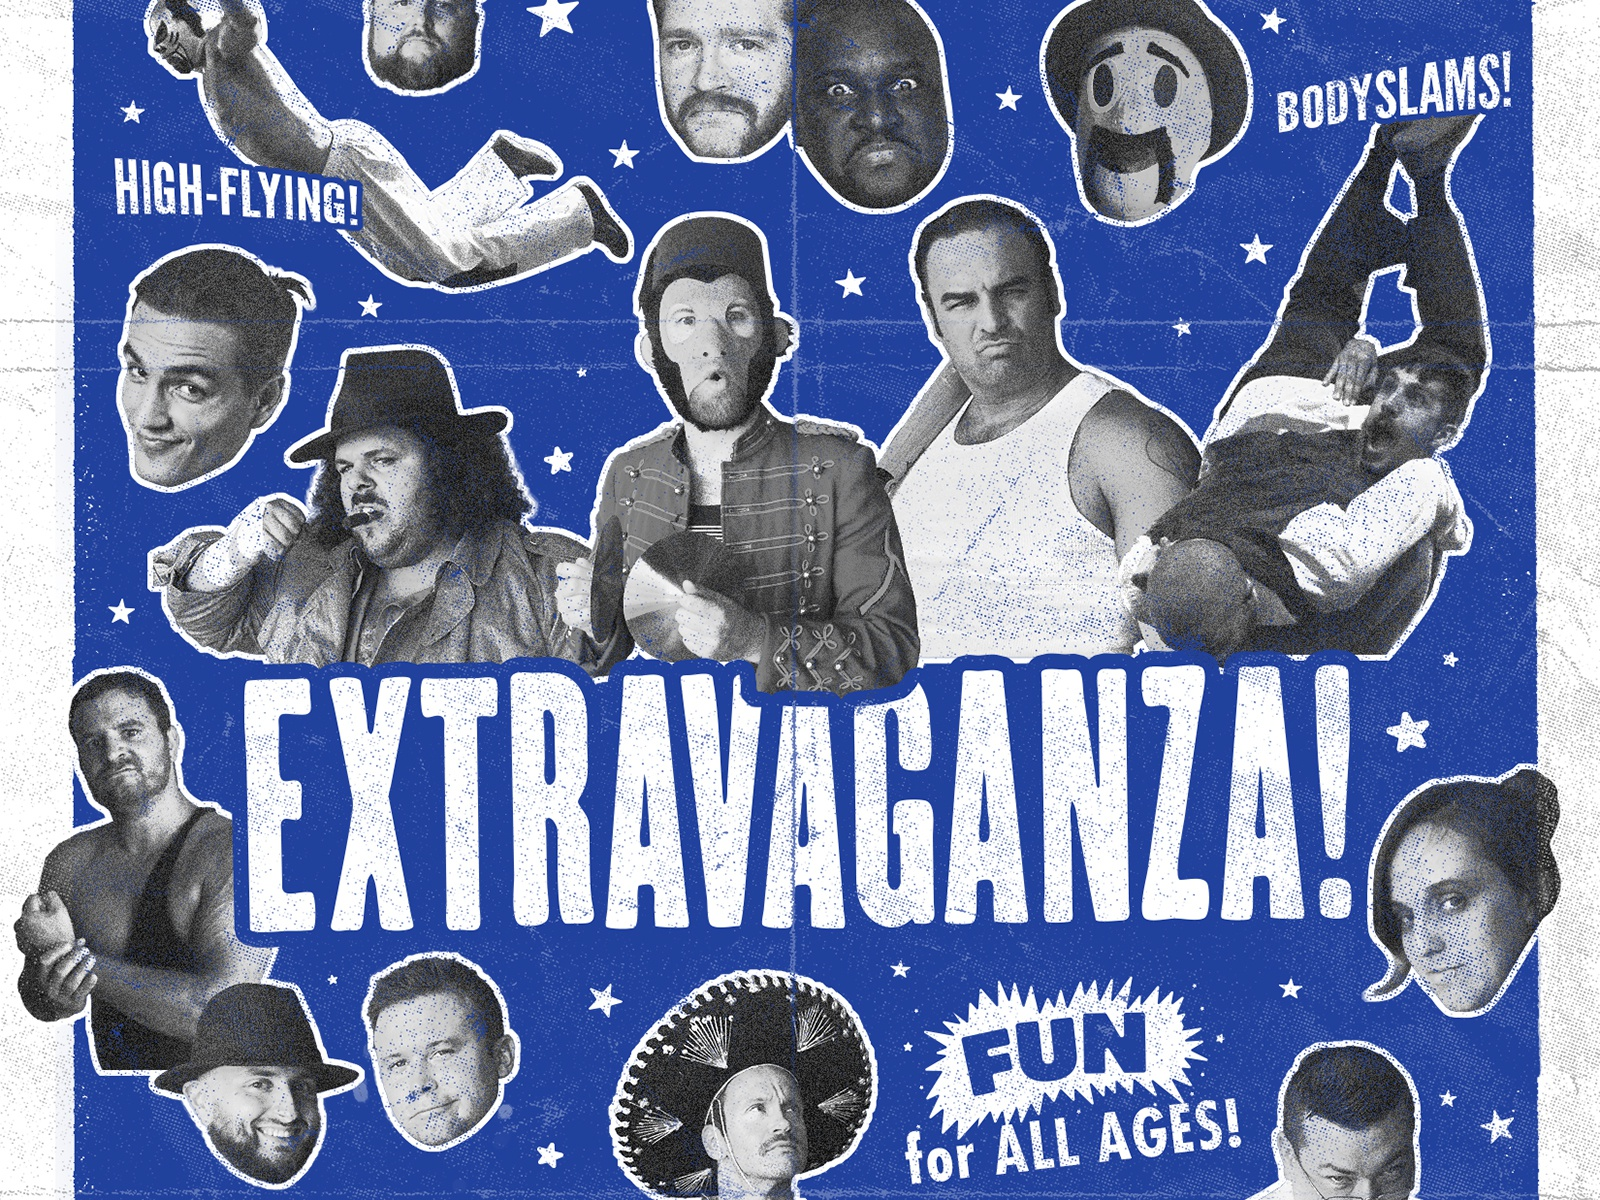 It's an EXTRAVAGANZA!! extravaganza ohio roaring 20s 1920s wrestling pro wrestling poster vintage